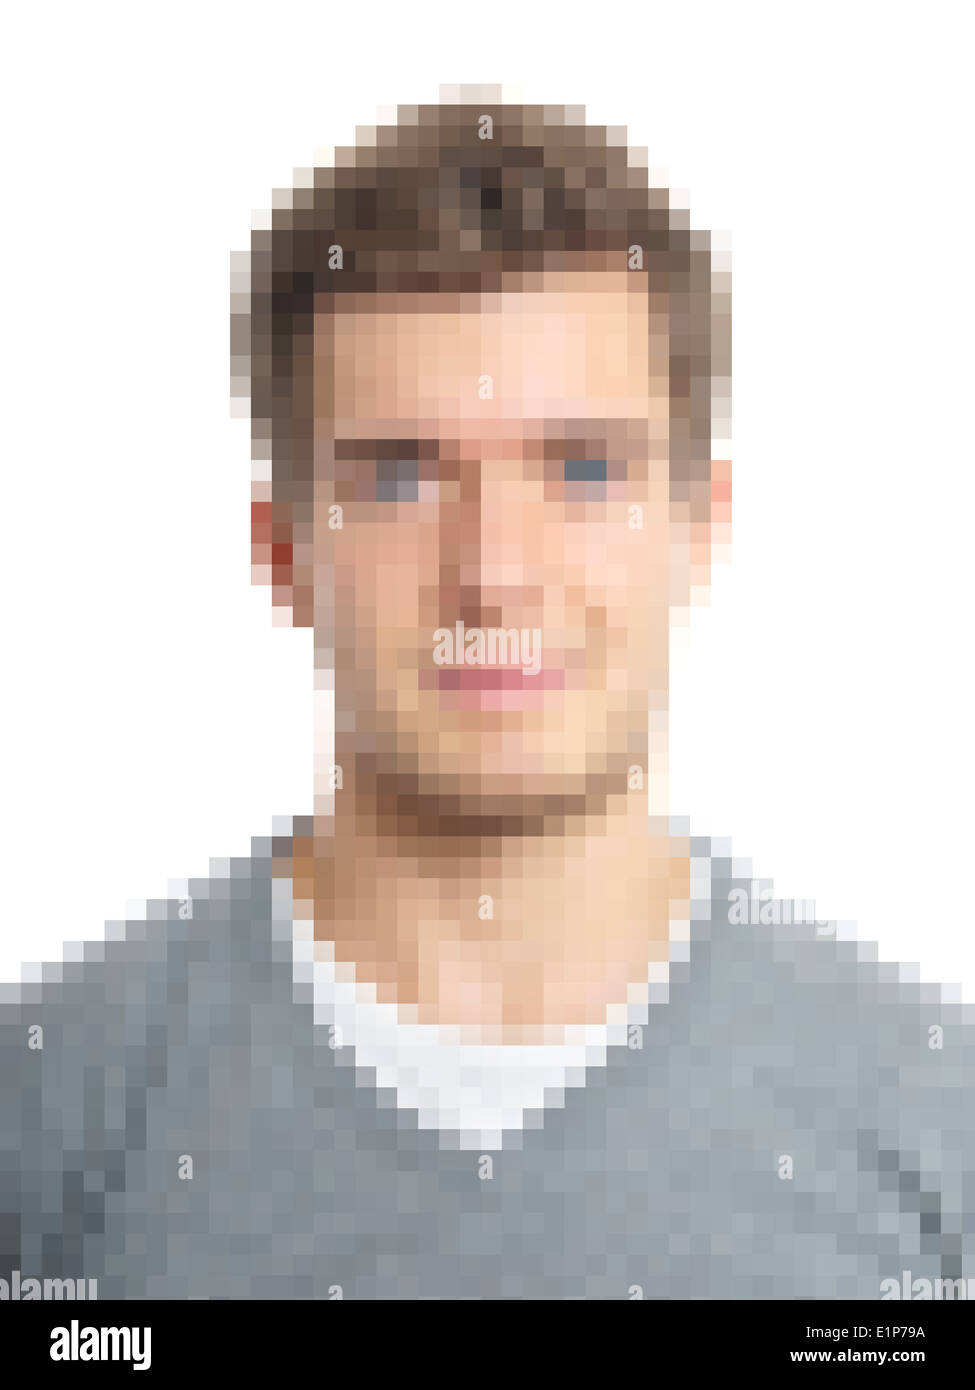 pixelated face to preserve anonymity - Stock Image